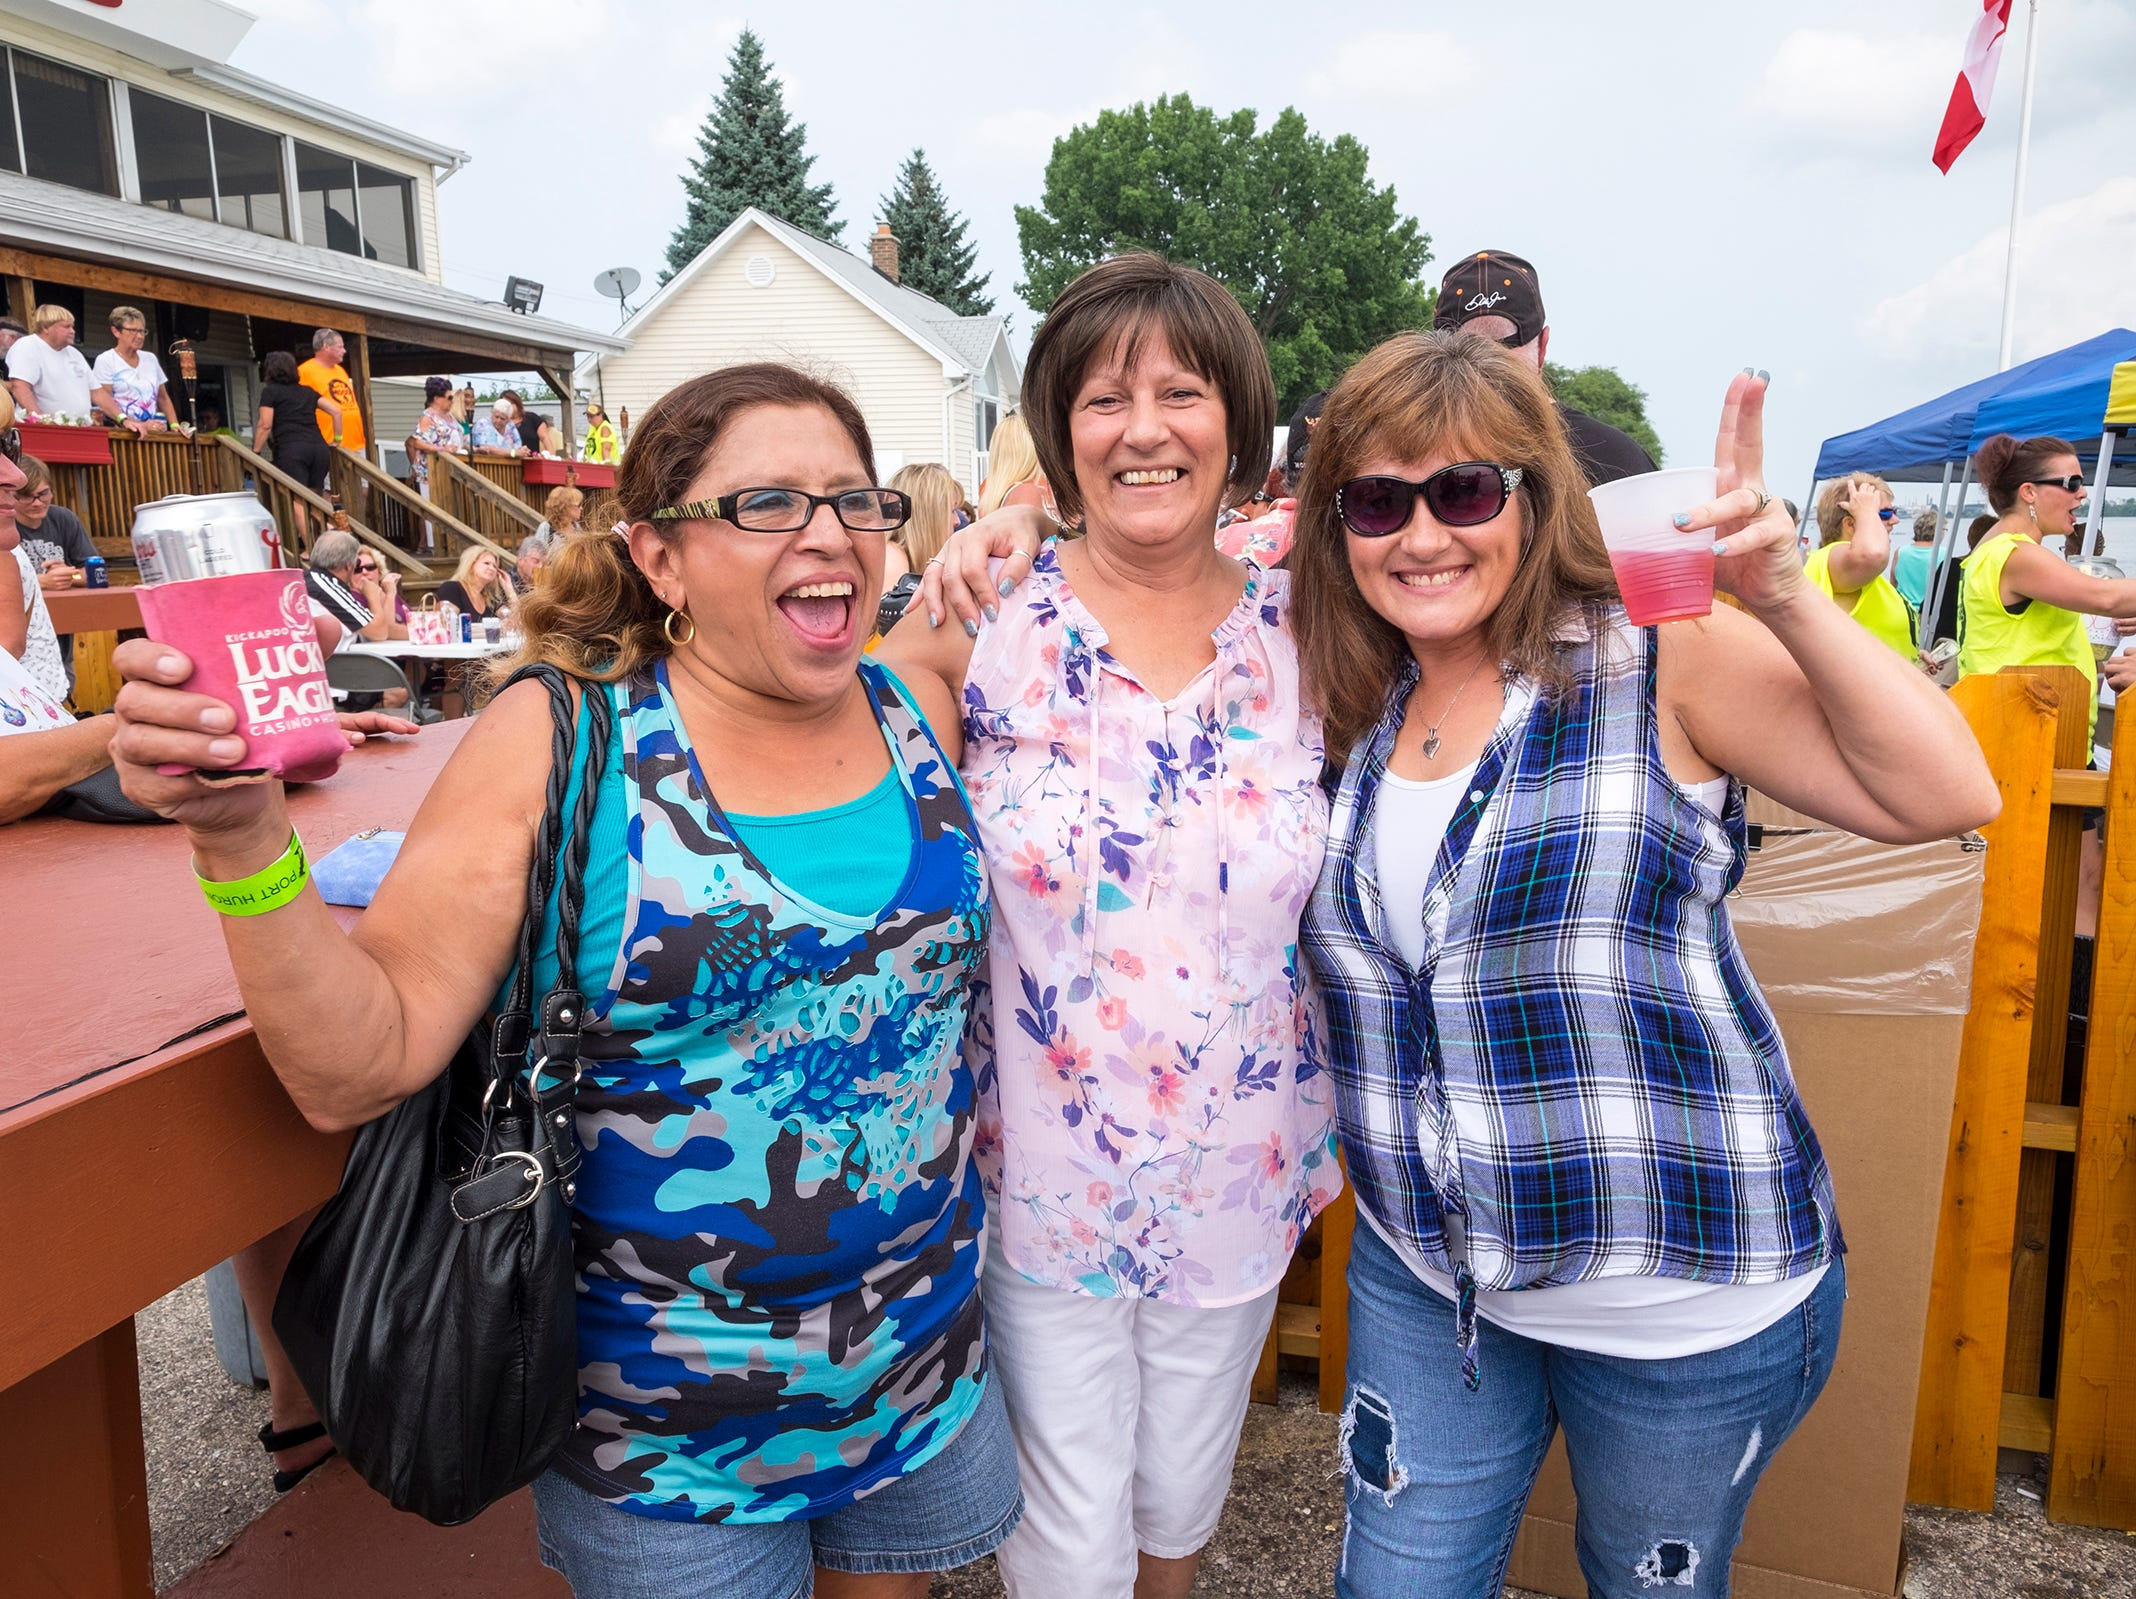 Mary Vicencio, Tina Sarazin and Tabatha Hegler stop for a photo Sunday, Aug. 19, 2018, during the Moose Lodge's annual Float Down party.